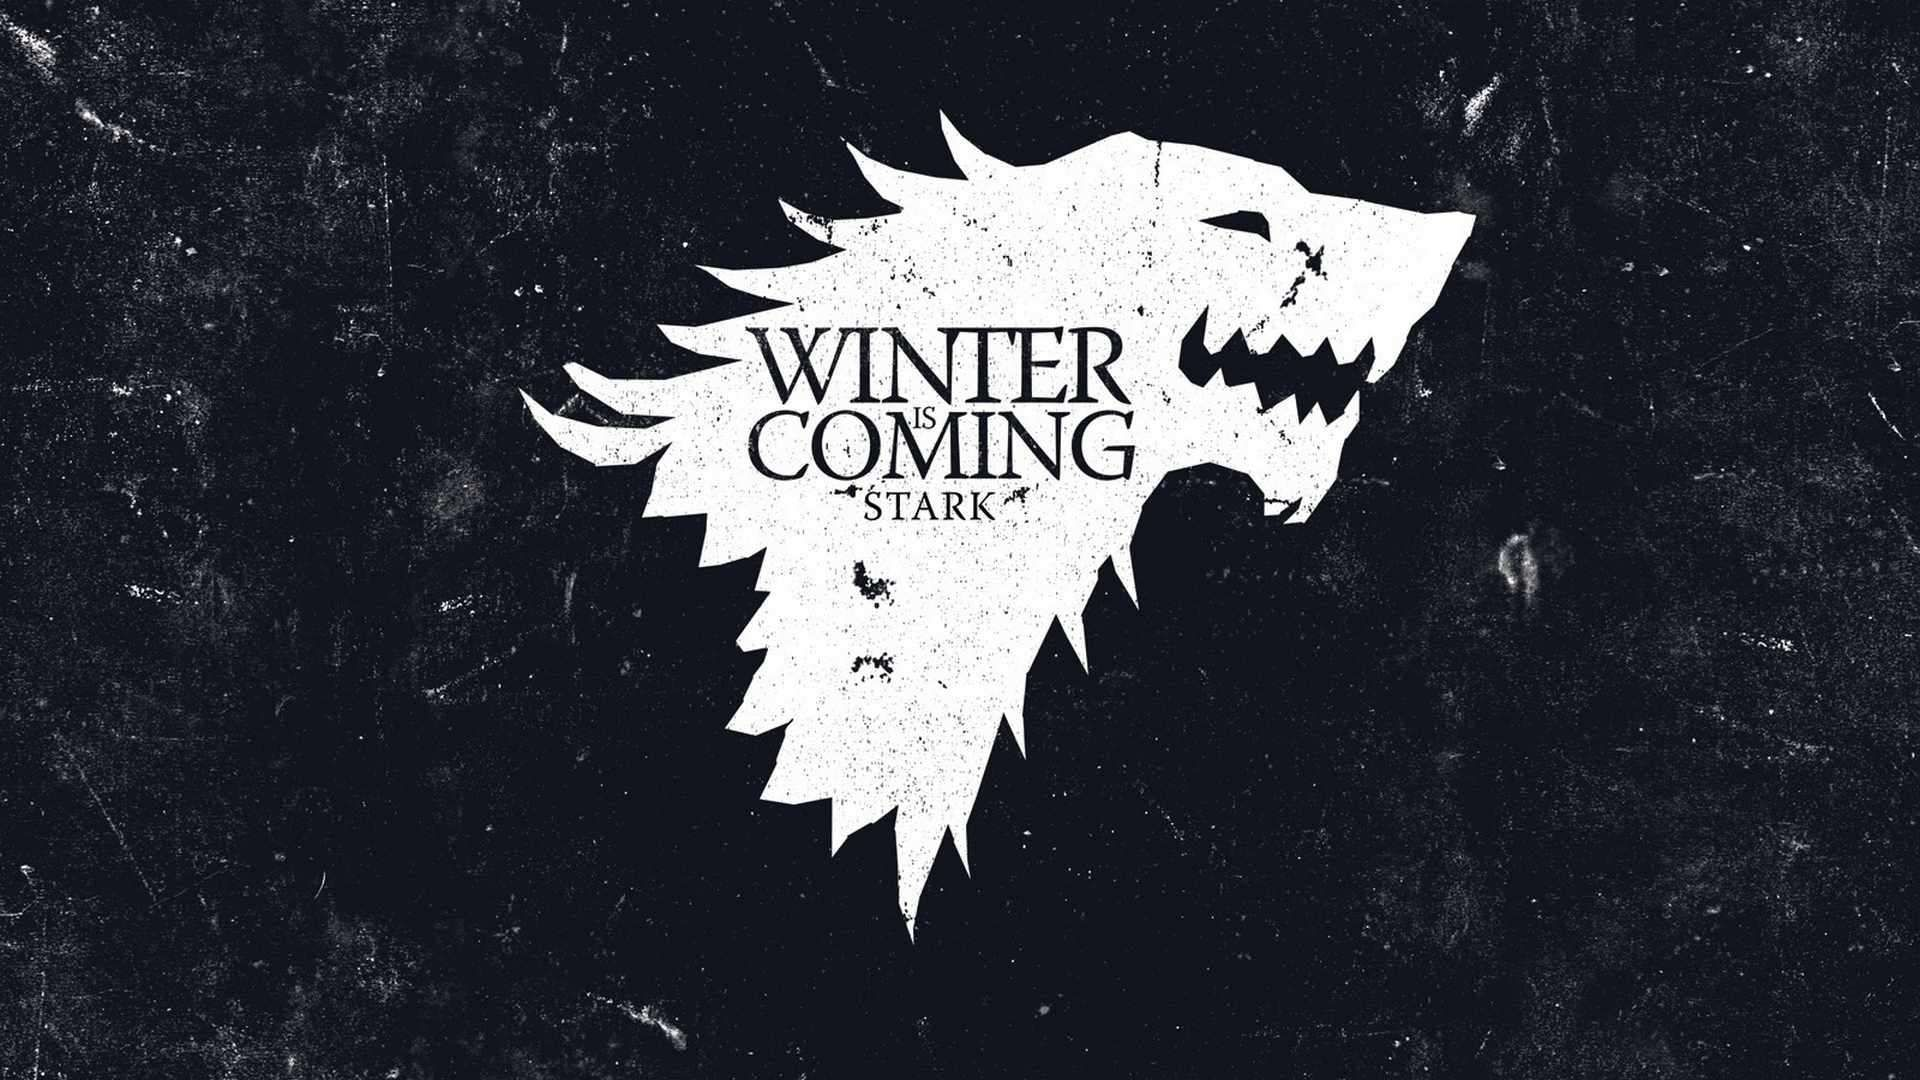 Games Of Throne Hd Wallpapers Winter Is Coming Wallpaper Game Of Thrones Winter Game Of Thrones Houses